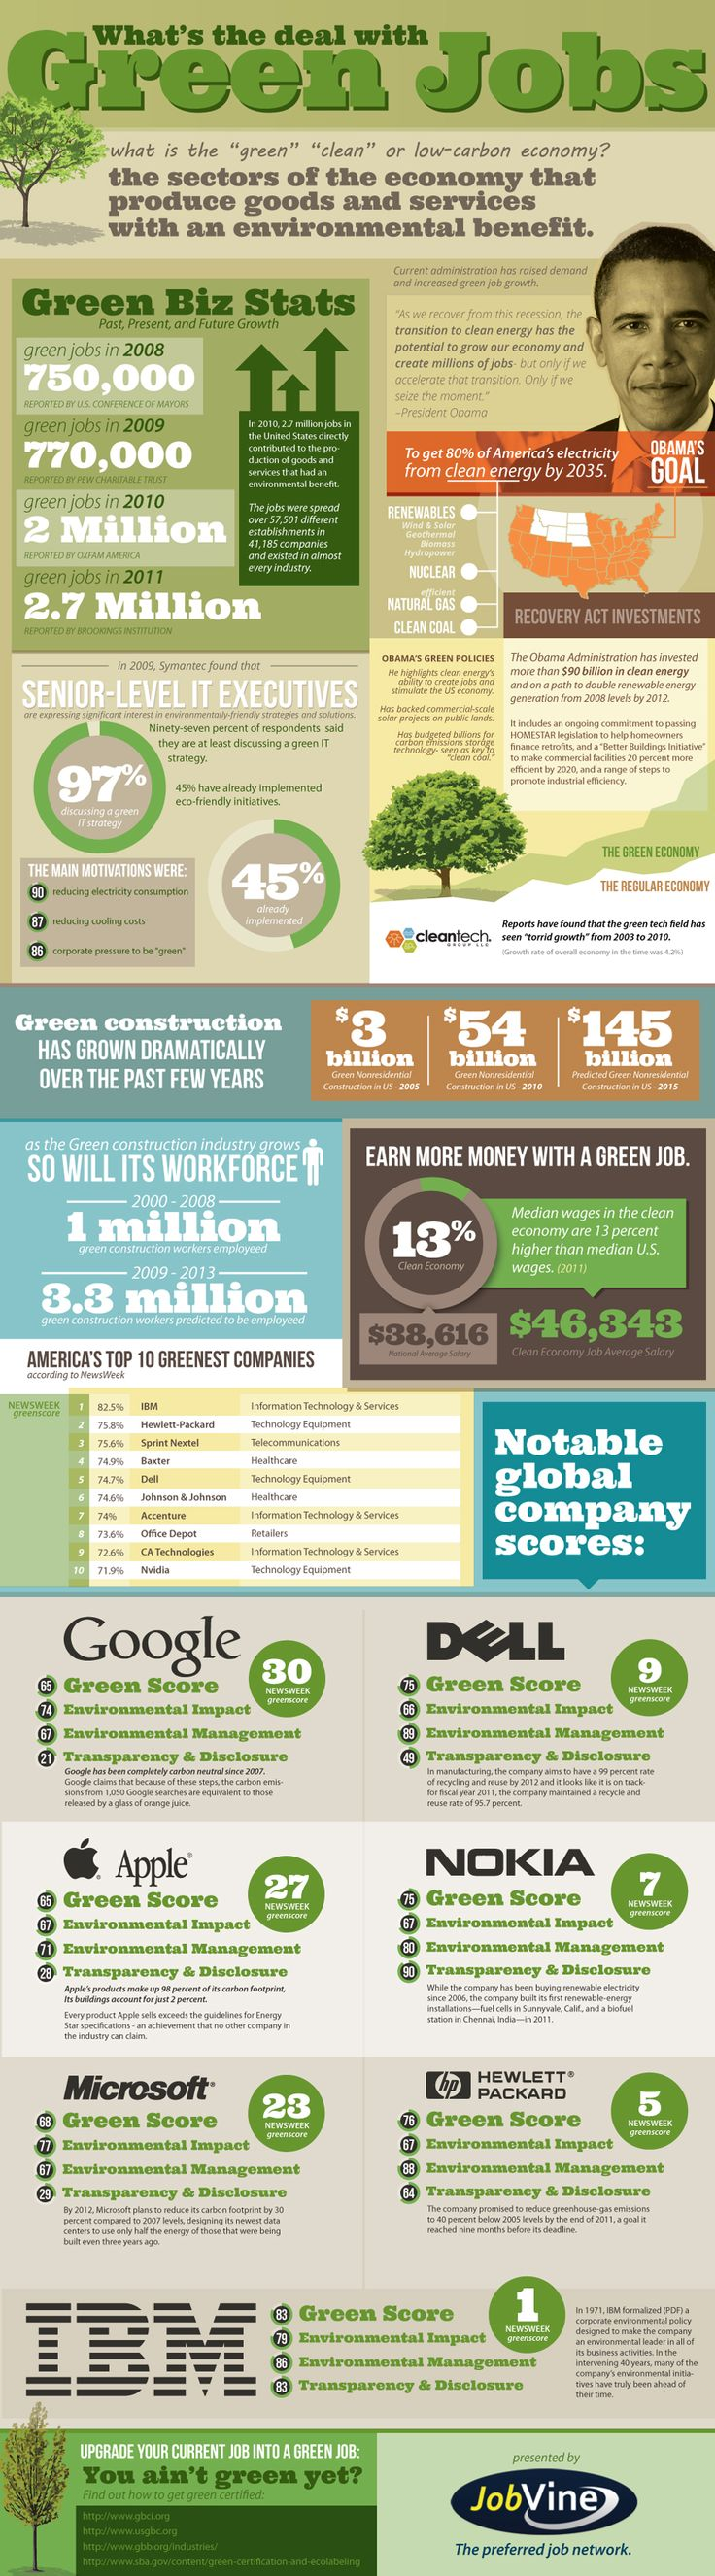 "Infographic: ""Tech Companies Ramping Up the Green Jobs"" -Take a look at the green profiles of IBM, Apple, Google, Dell, Nokia, HP and Microsoft, and check out the other stats in the infographic below, produced by JobVine."